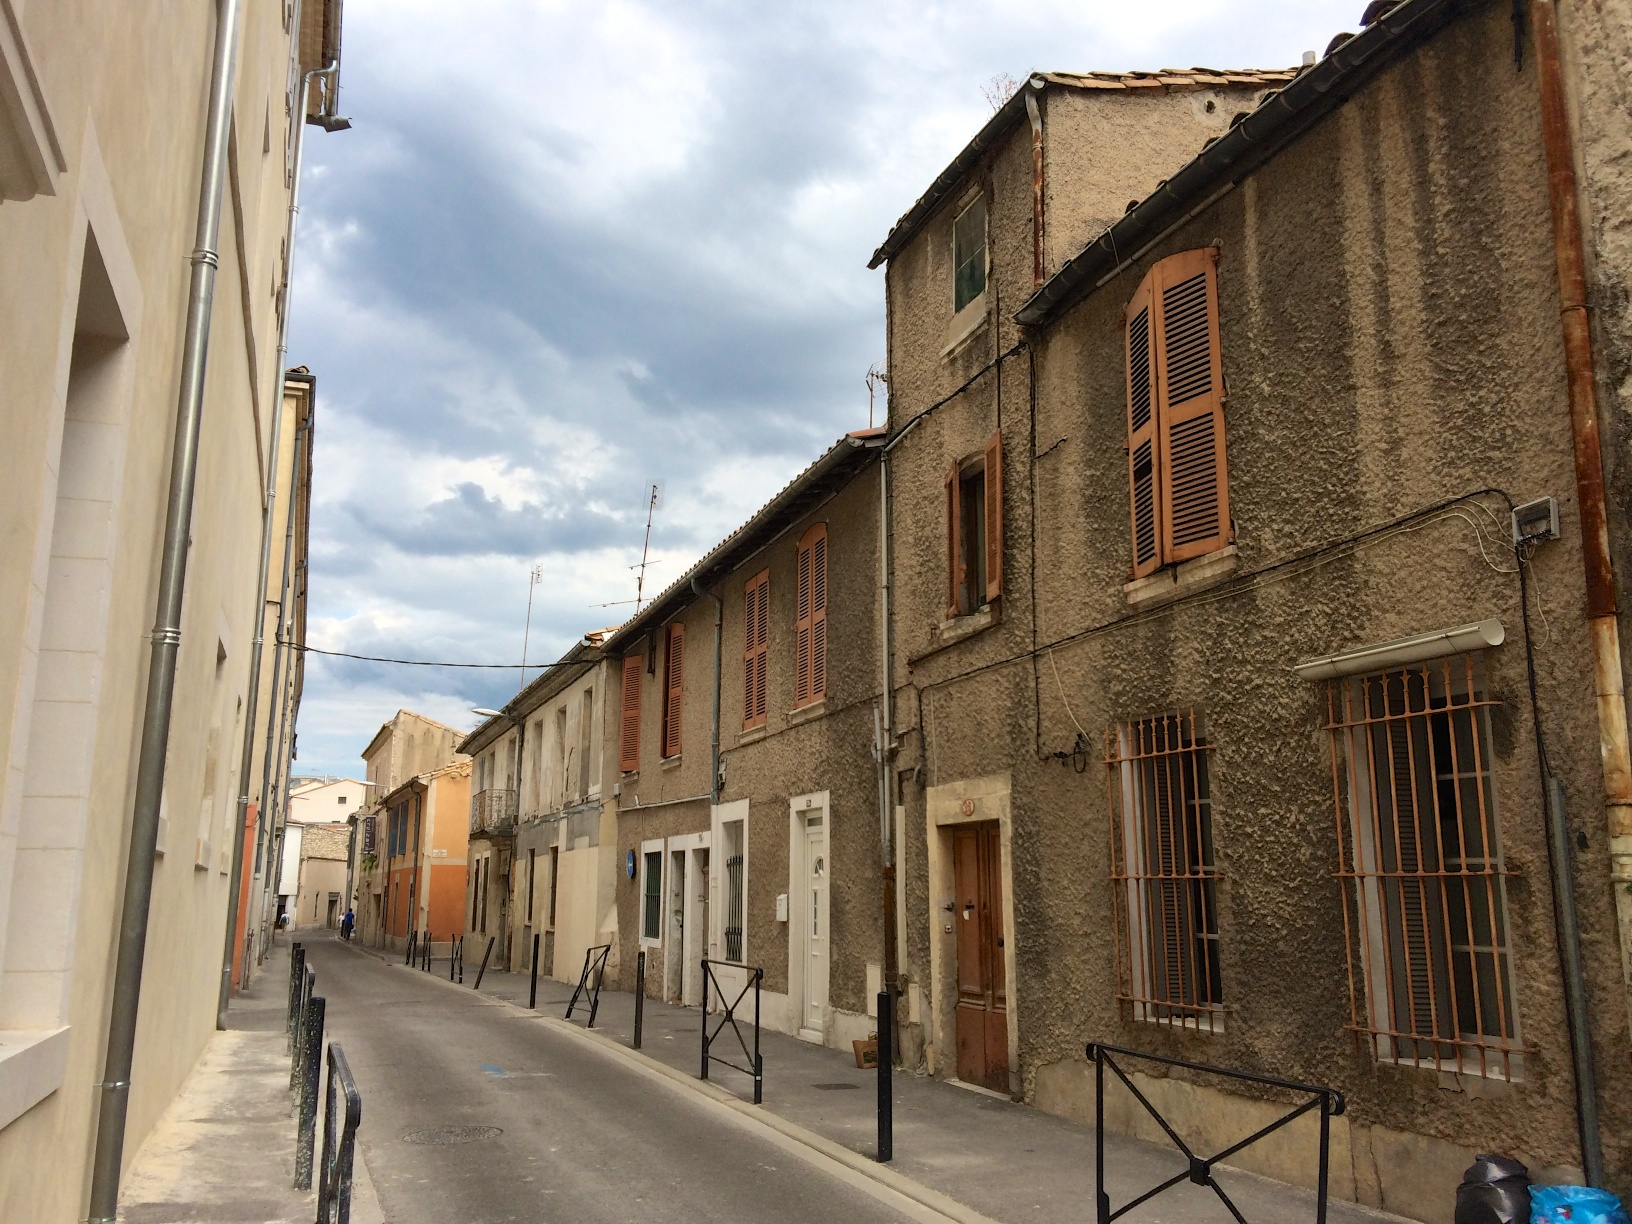 Streets of Nimes